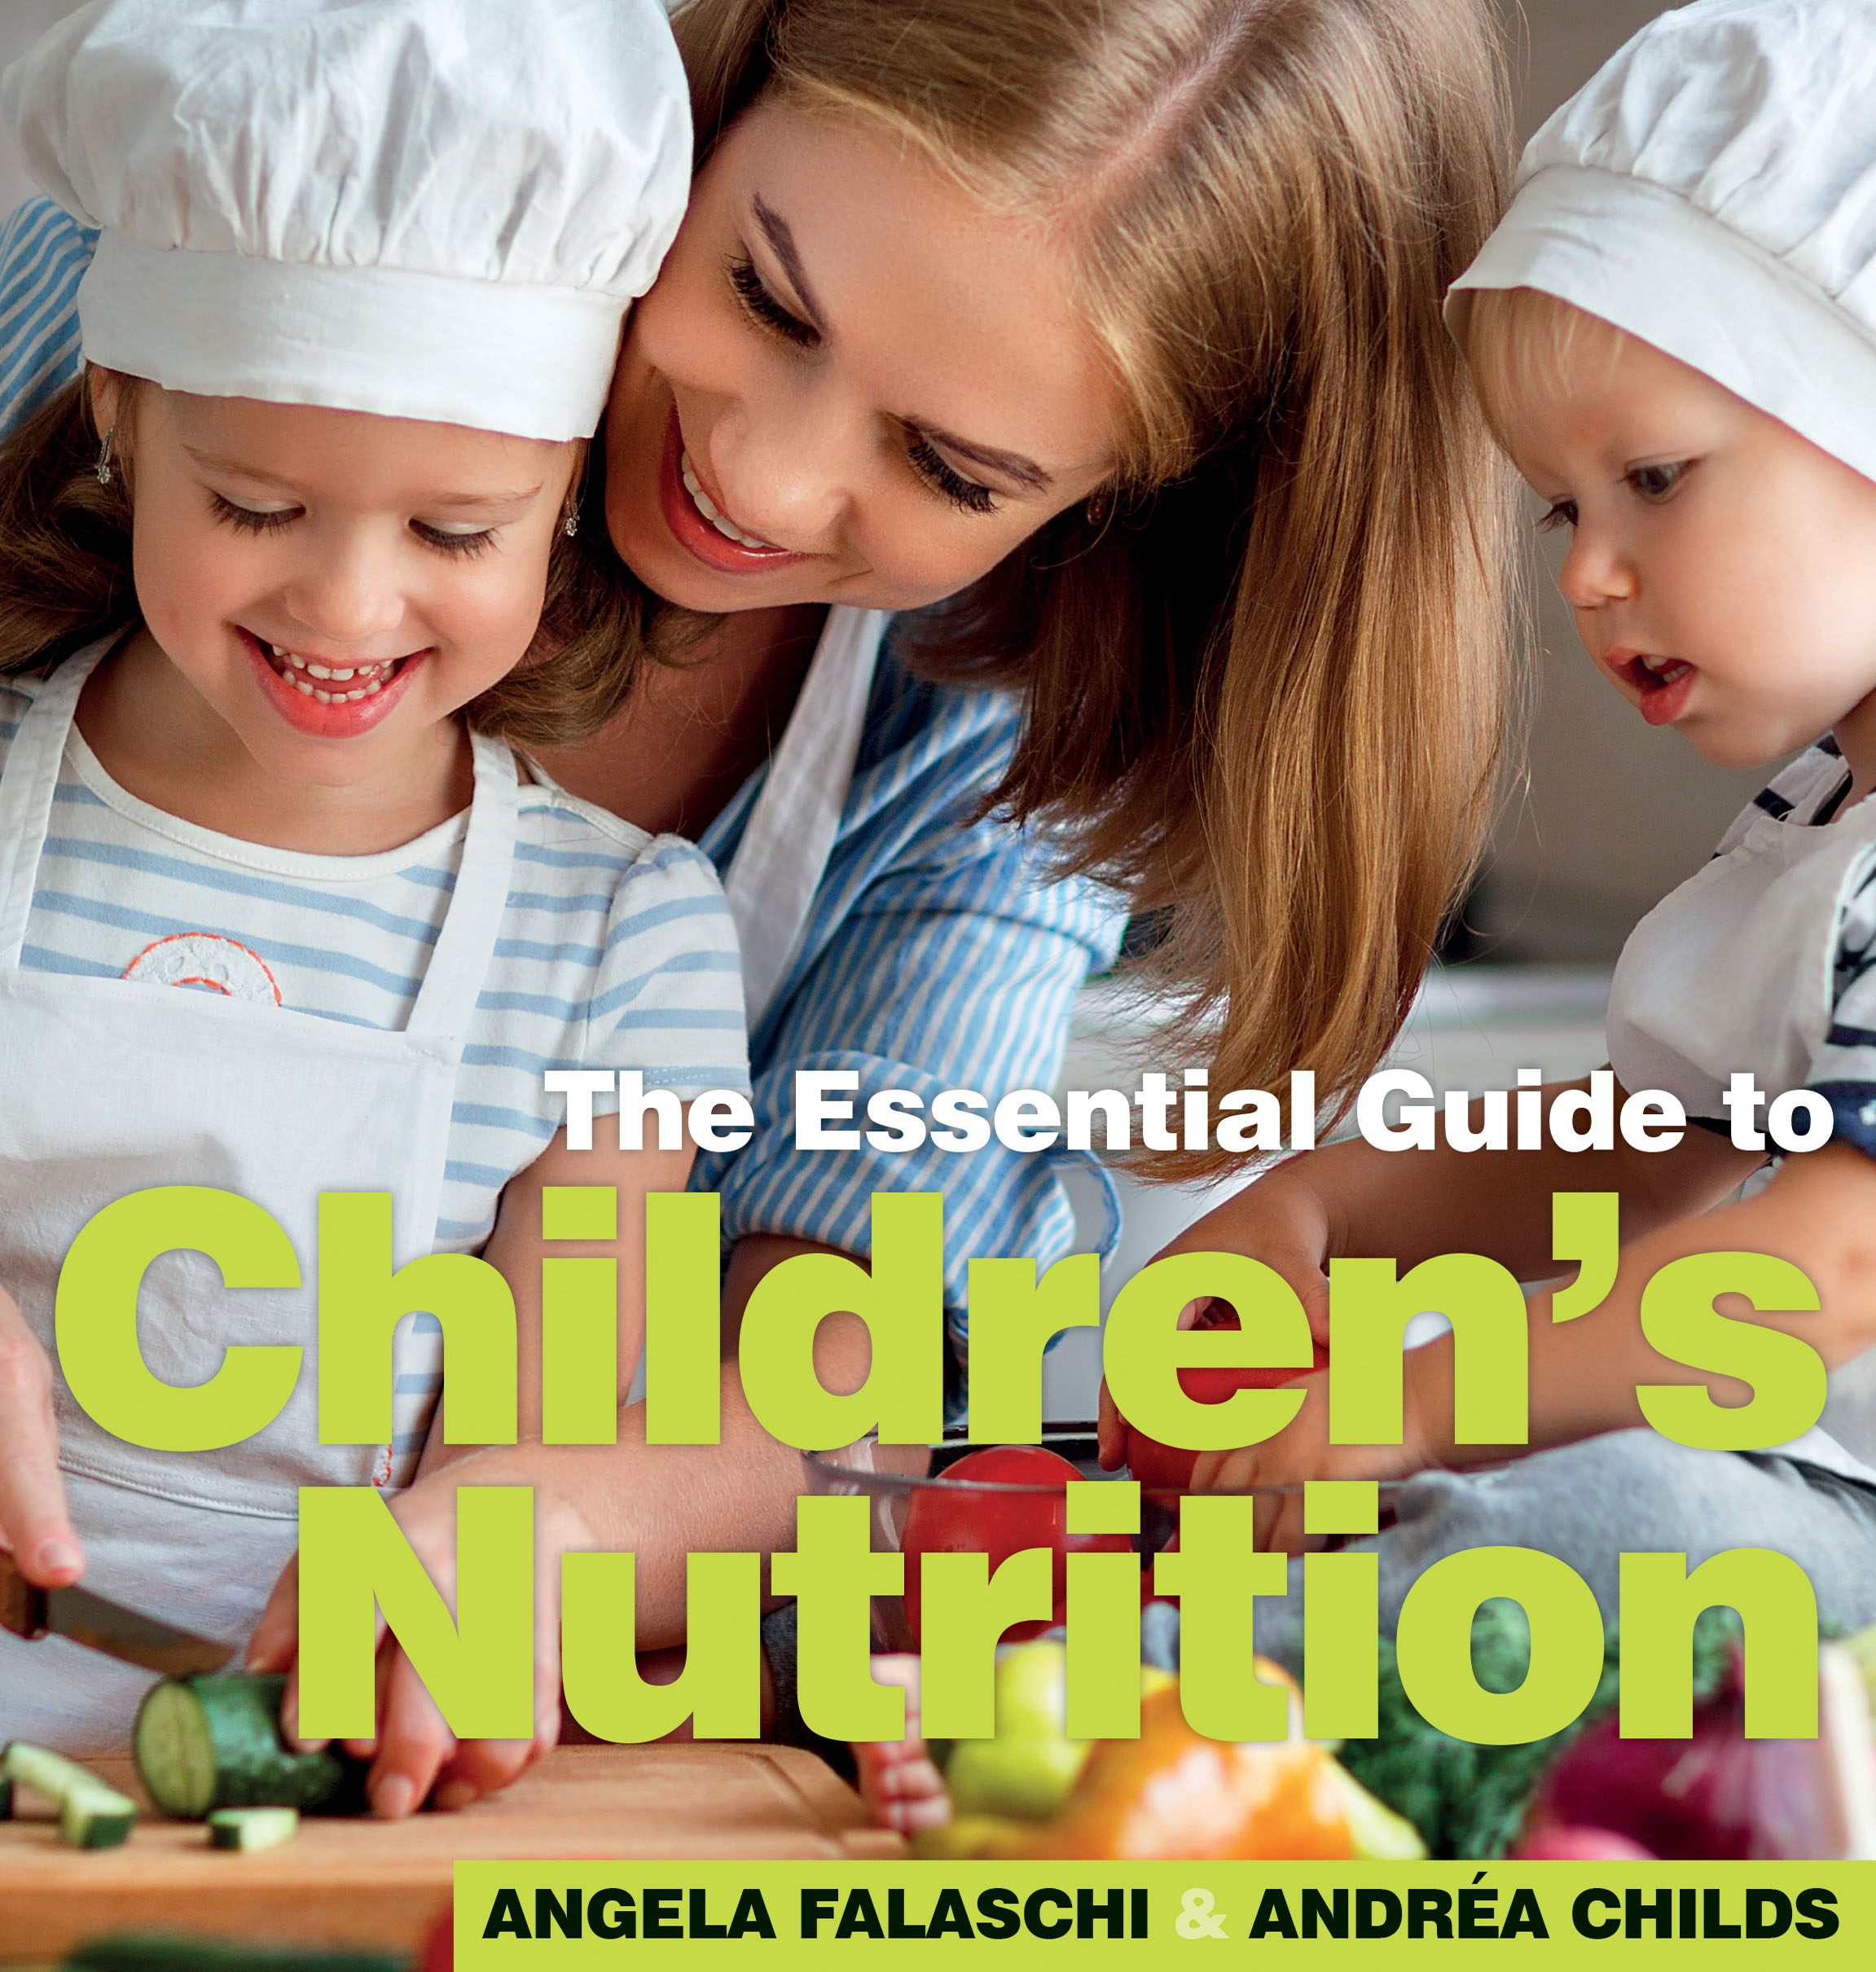 The Essential Guide To Children's Nutrition